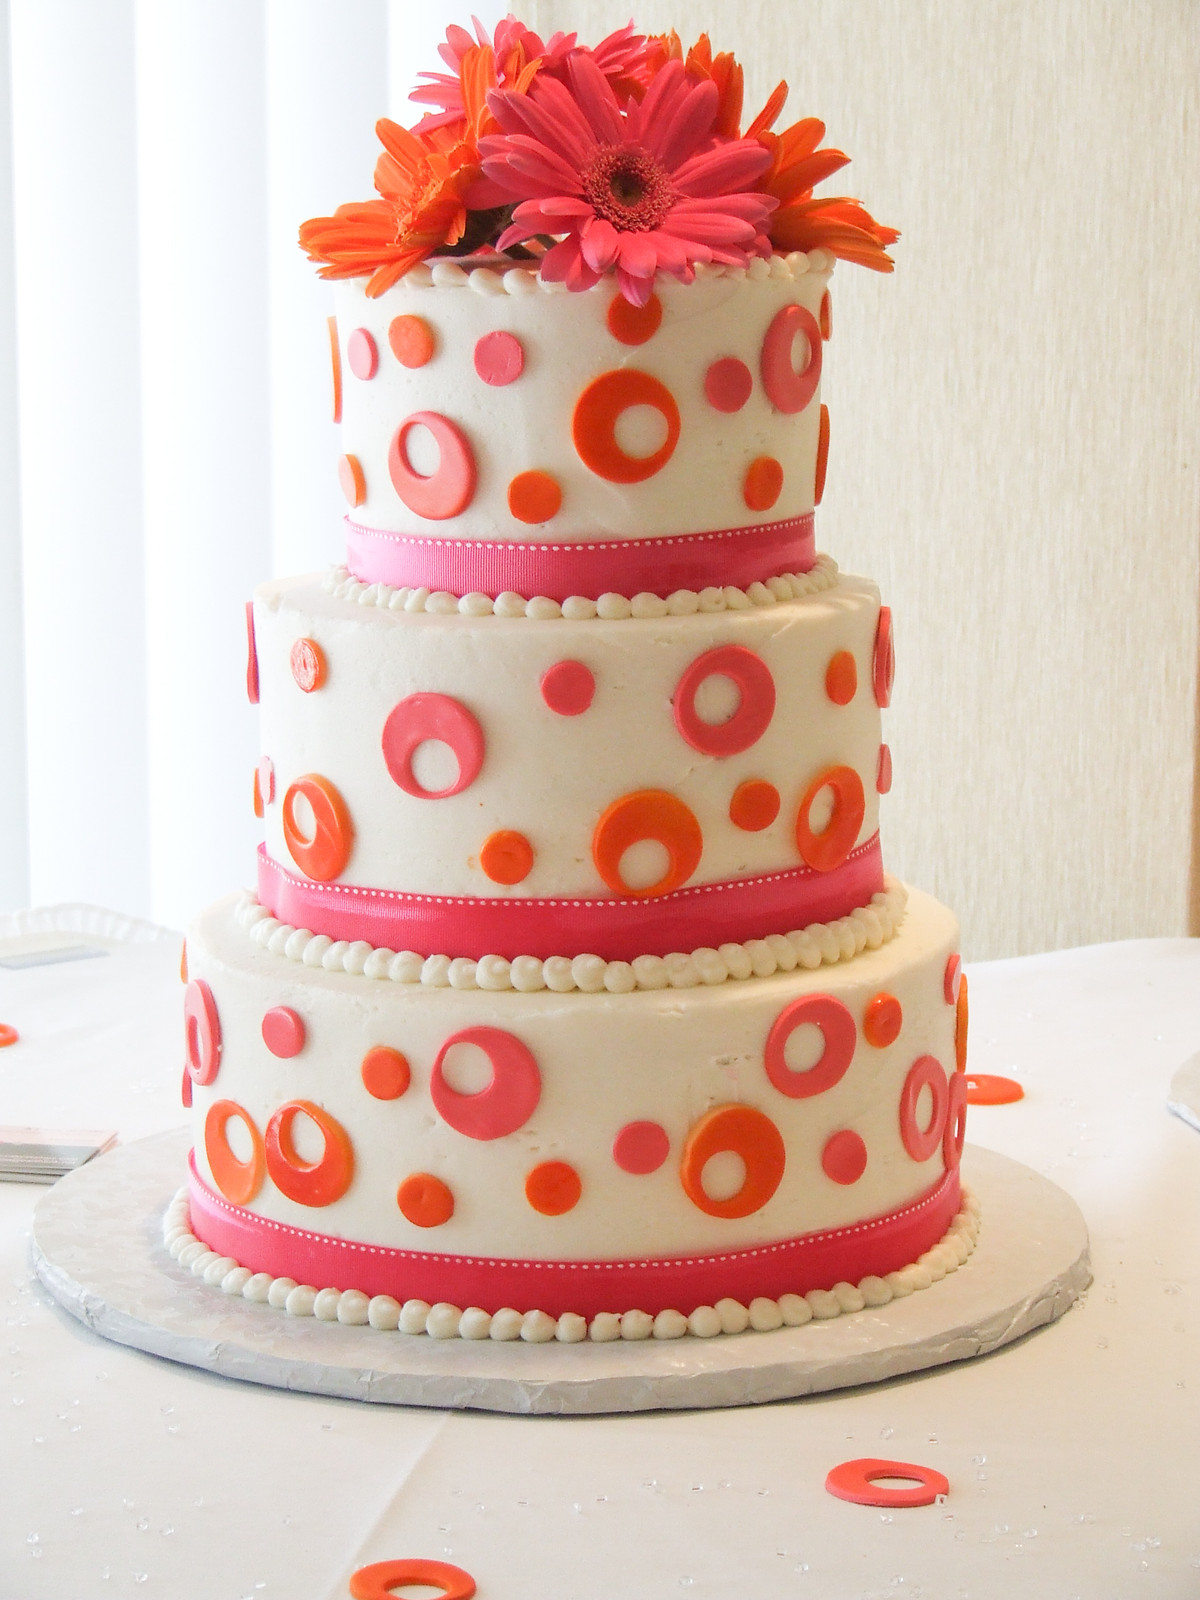 Cakes In An Orange